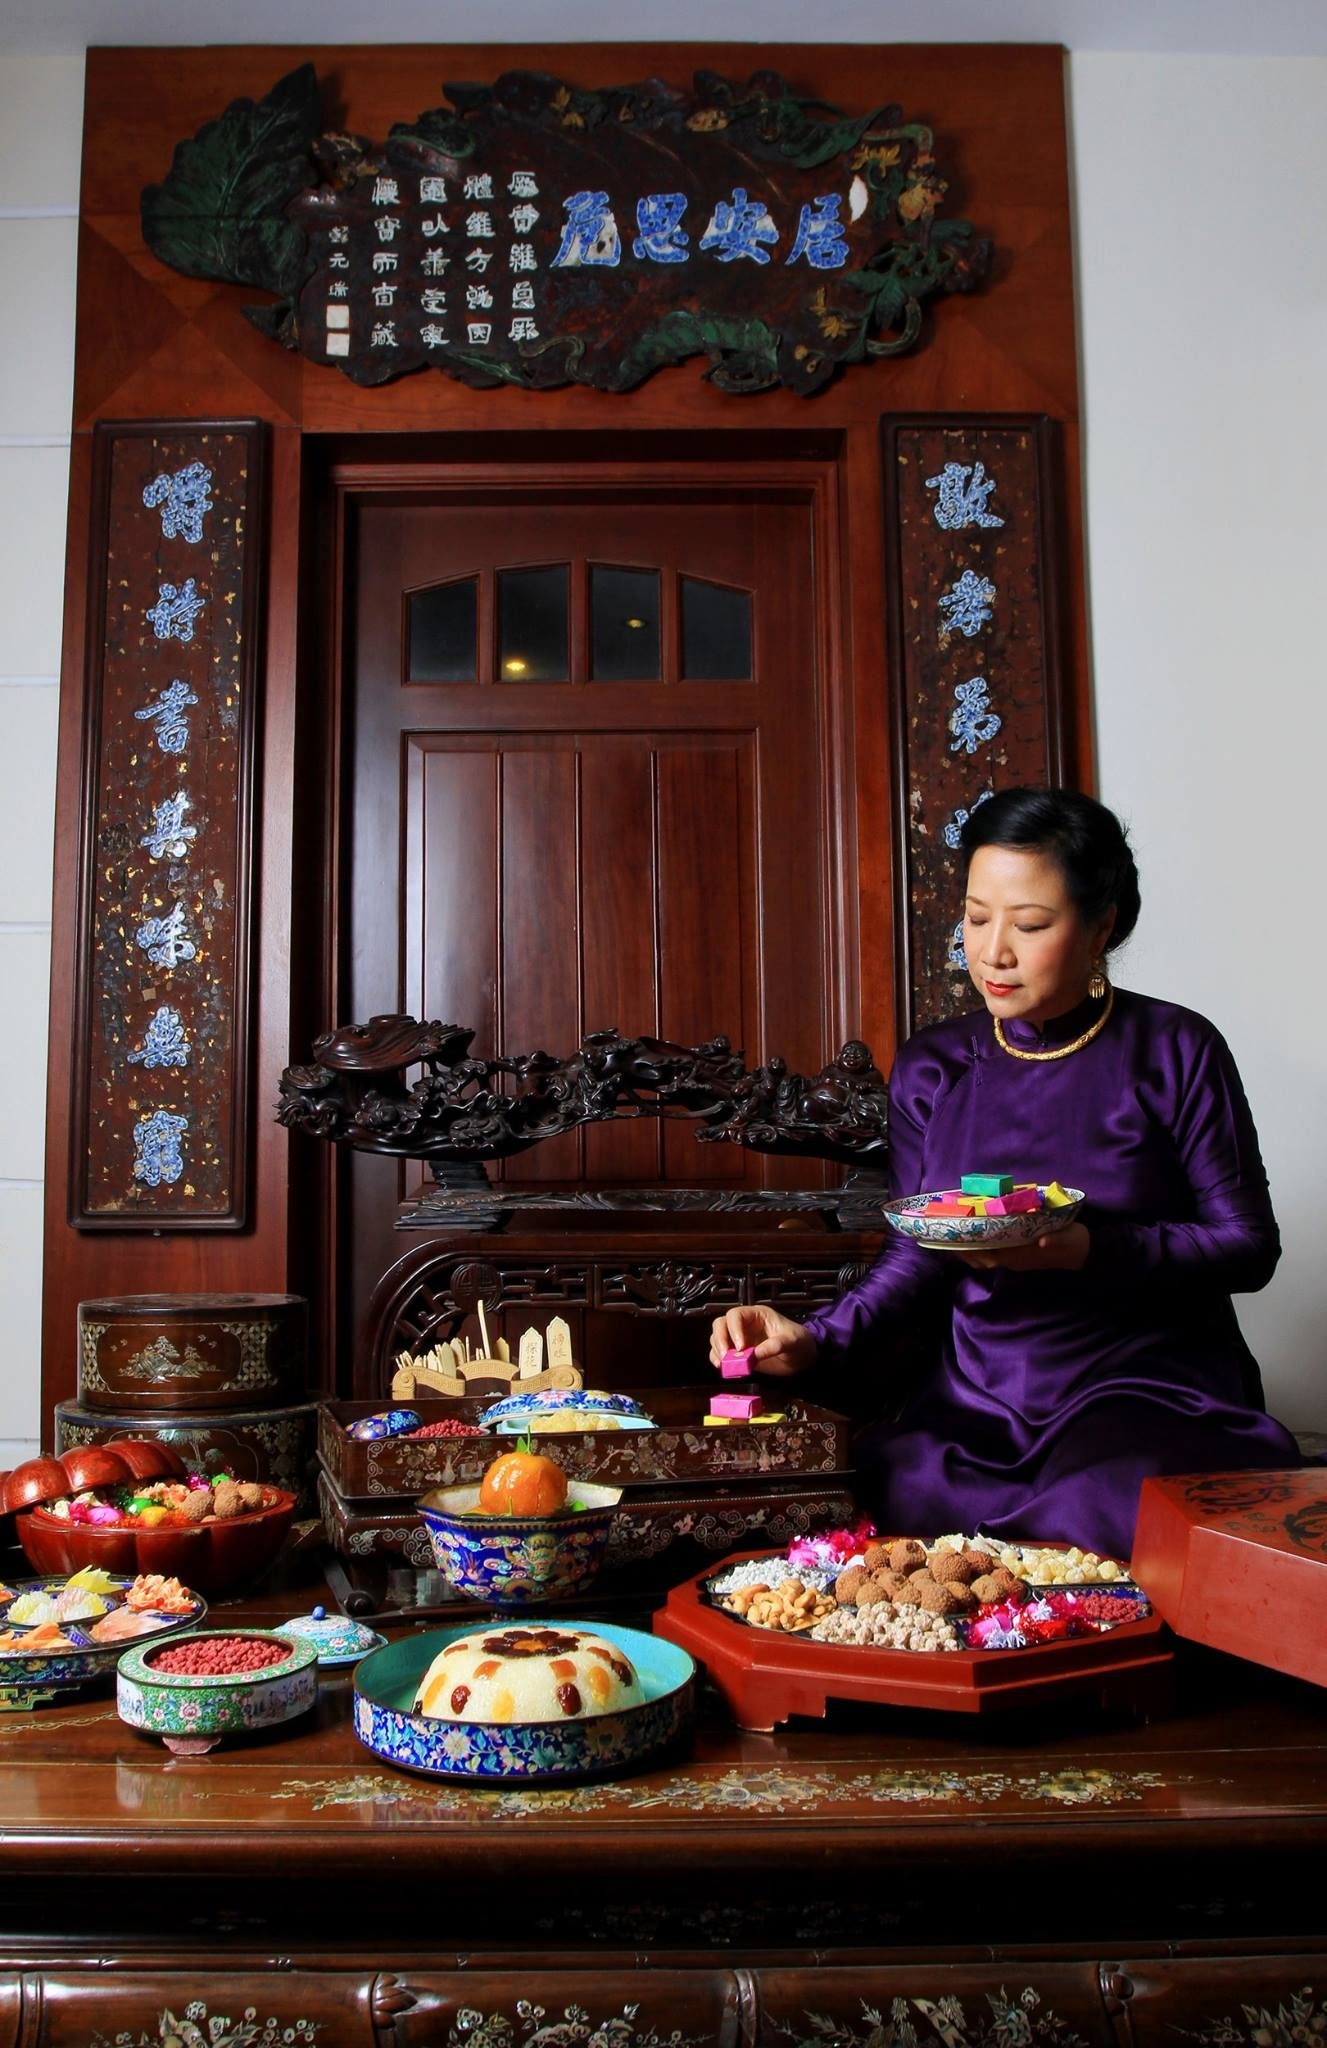 Exploring hue royal fruit preserves and cakes